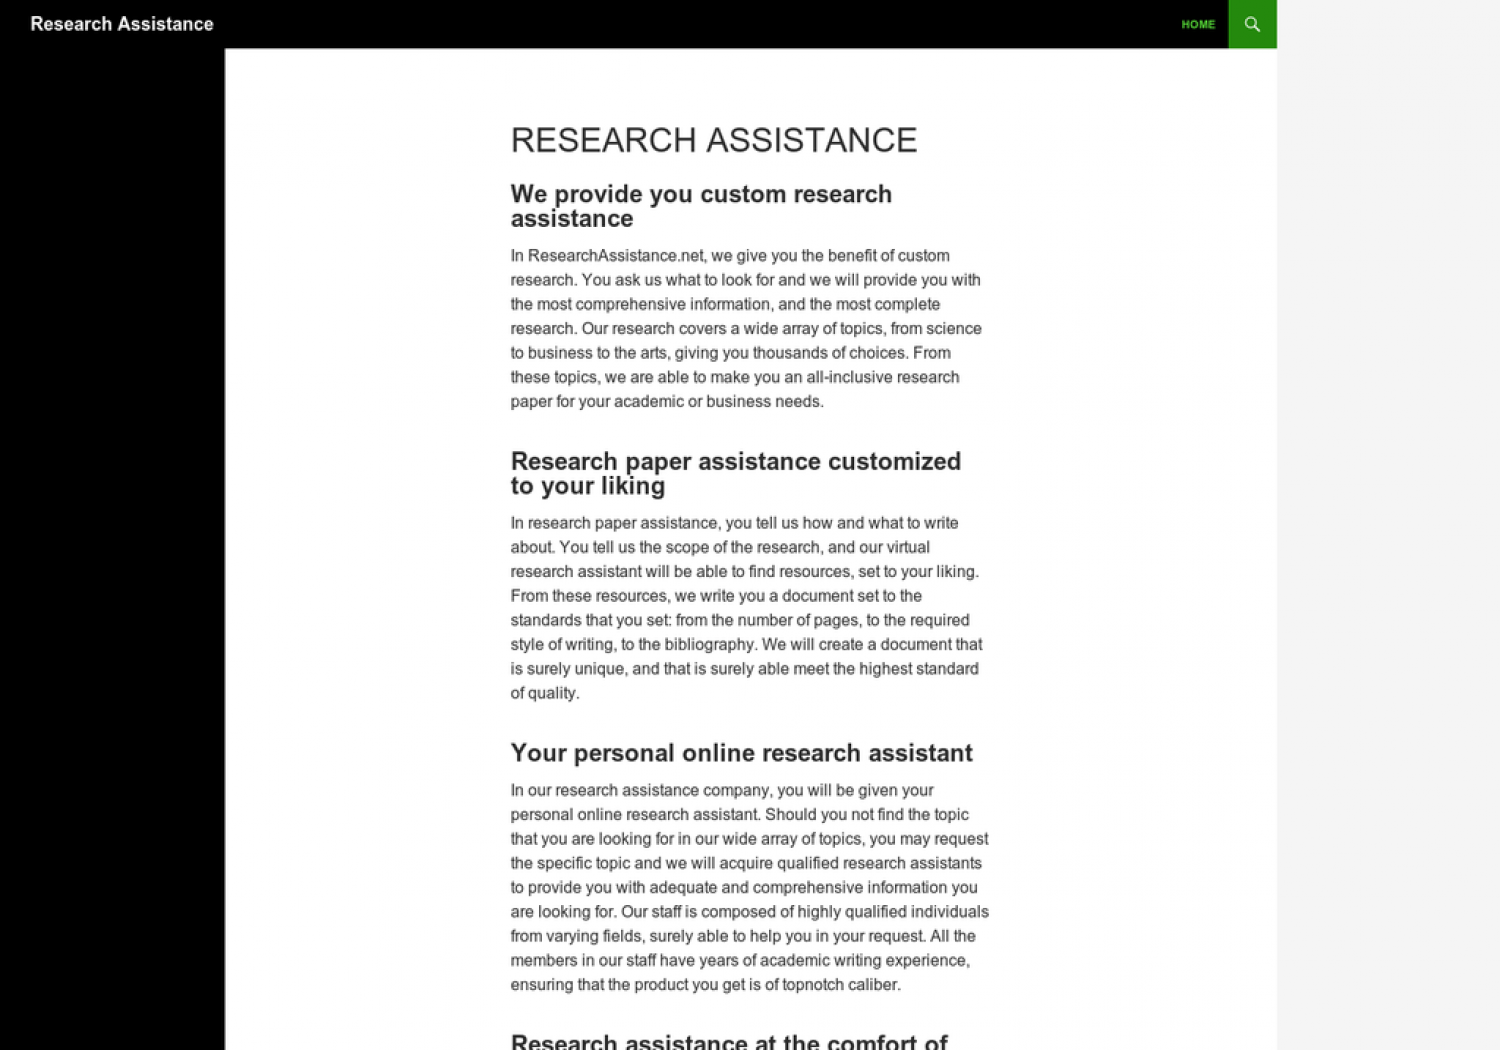 custom research assistance ly custom research assistance infographic